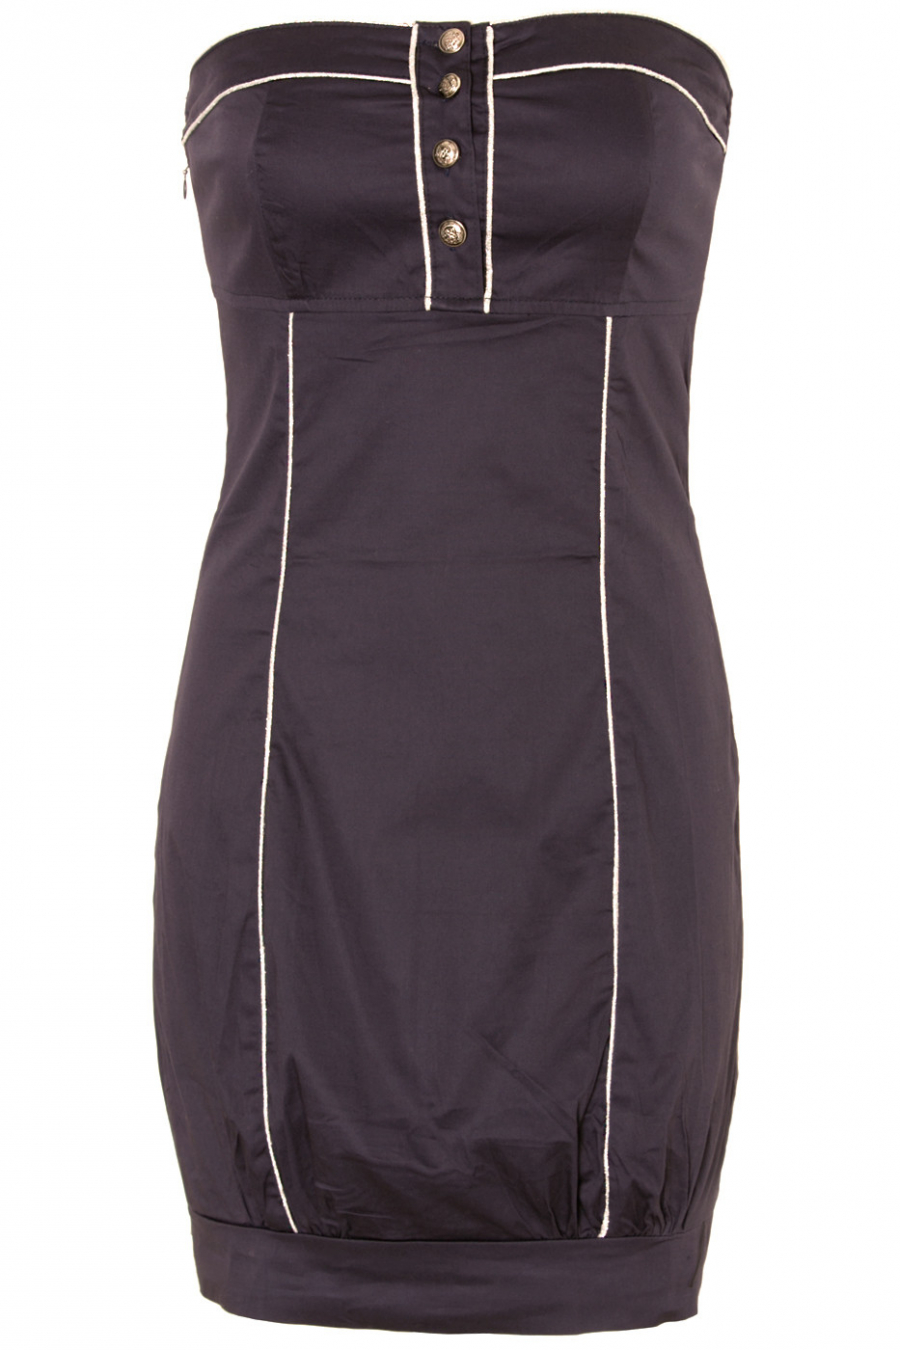 Short strapless dress Navy blue with silver trims and officer style buttons. 2031